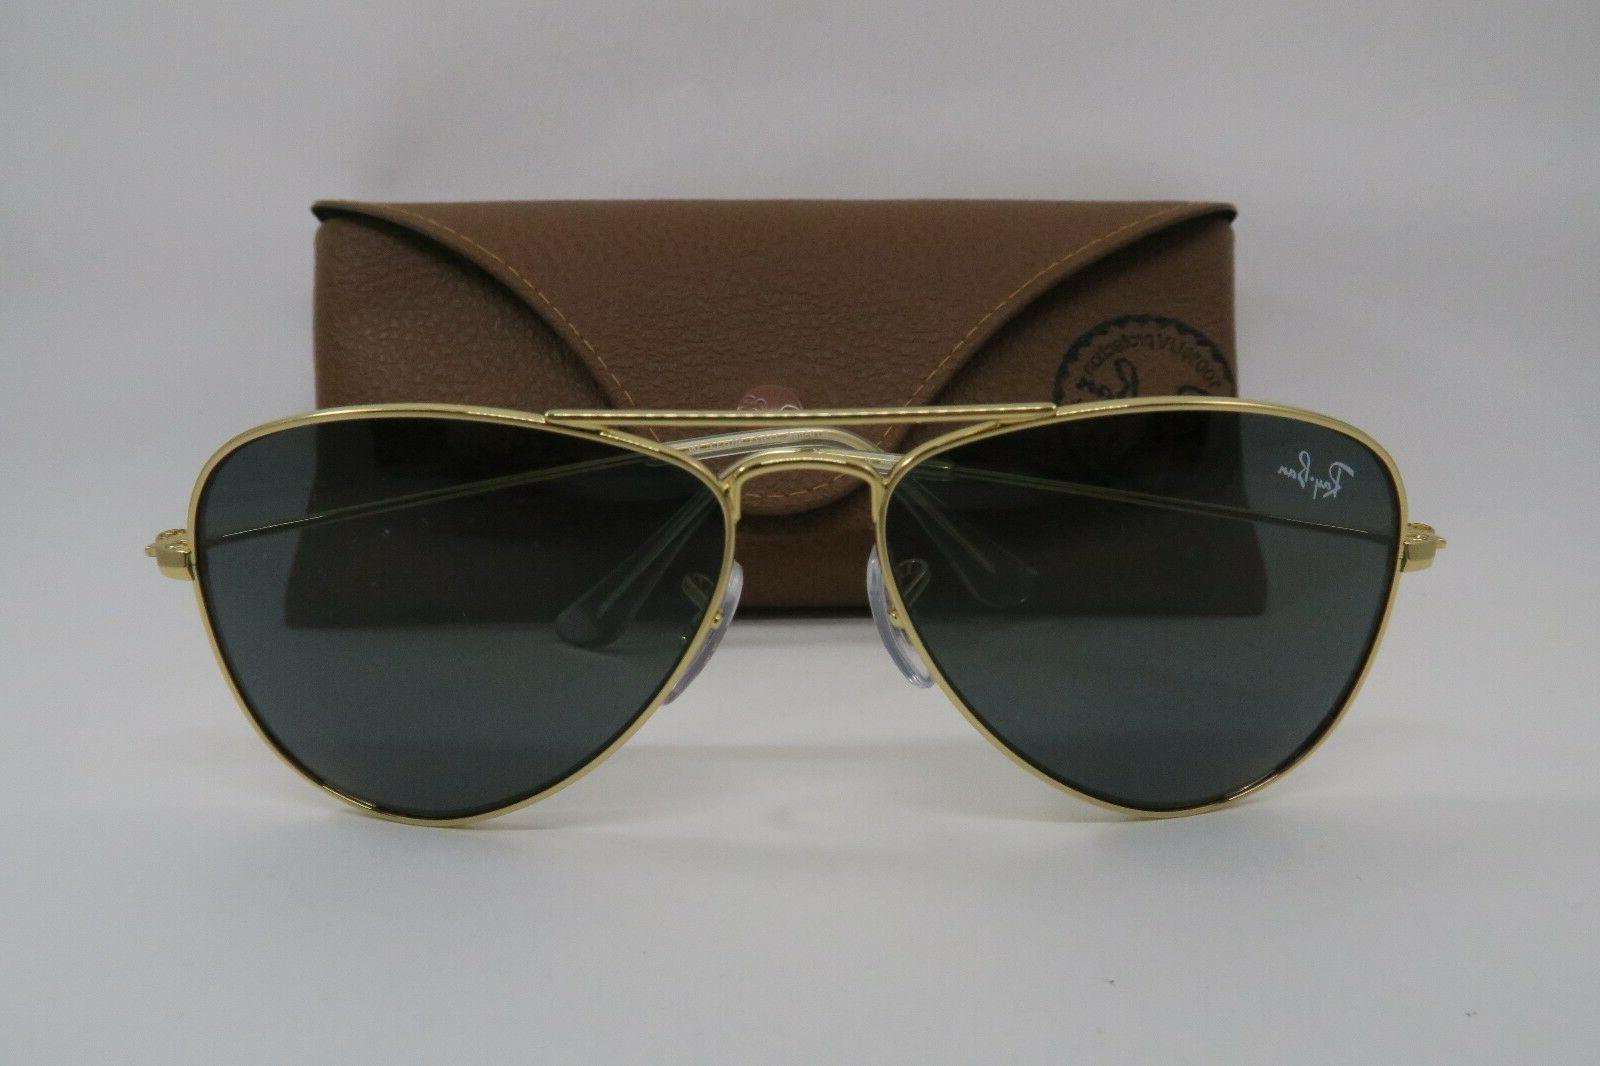 dc672e6d51 New Ray Ban Juniors KIDS RJ 9506 S 223 71 Gold Aviator Sungl